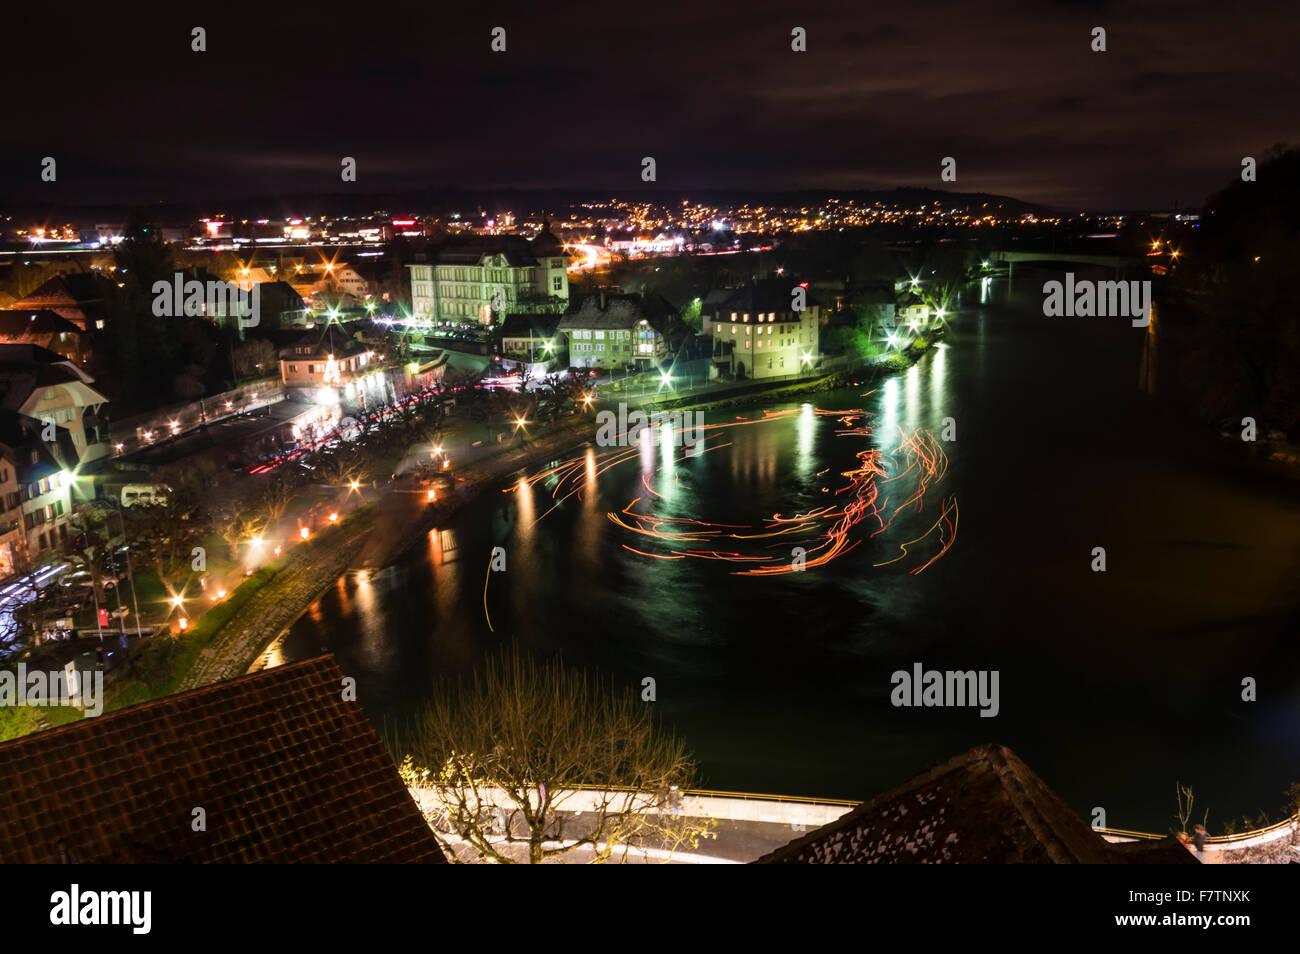 Waterfront of the town of Aarburg, Switzerland, at night, during the 'Aarburg leuchtet' Christmas event. - Stock Image